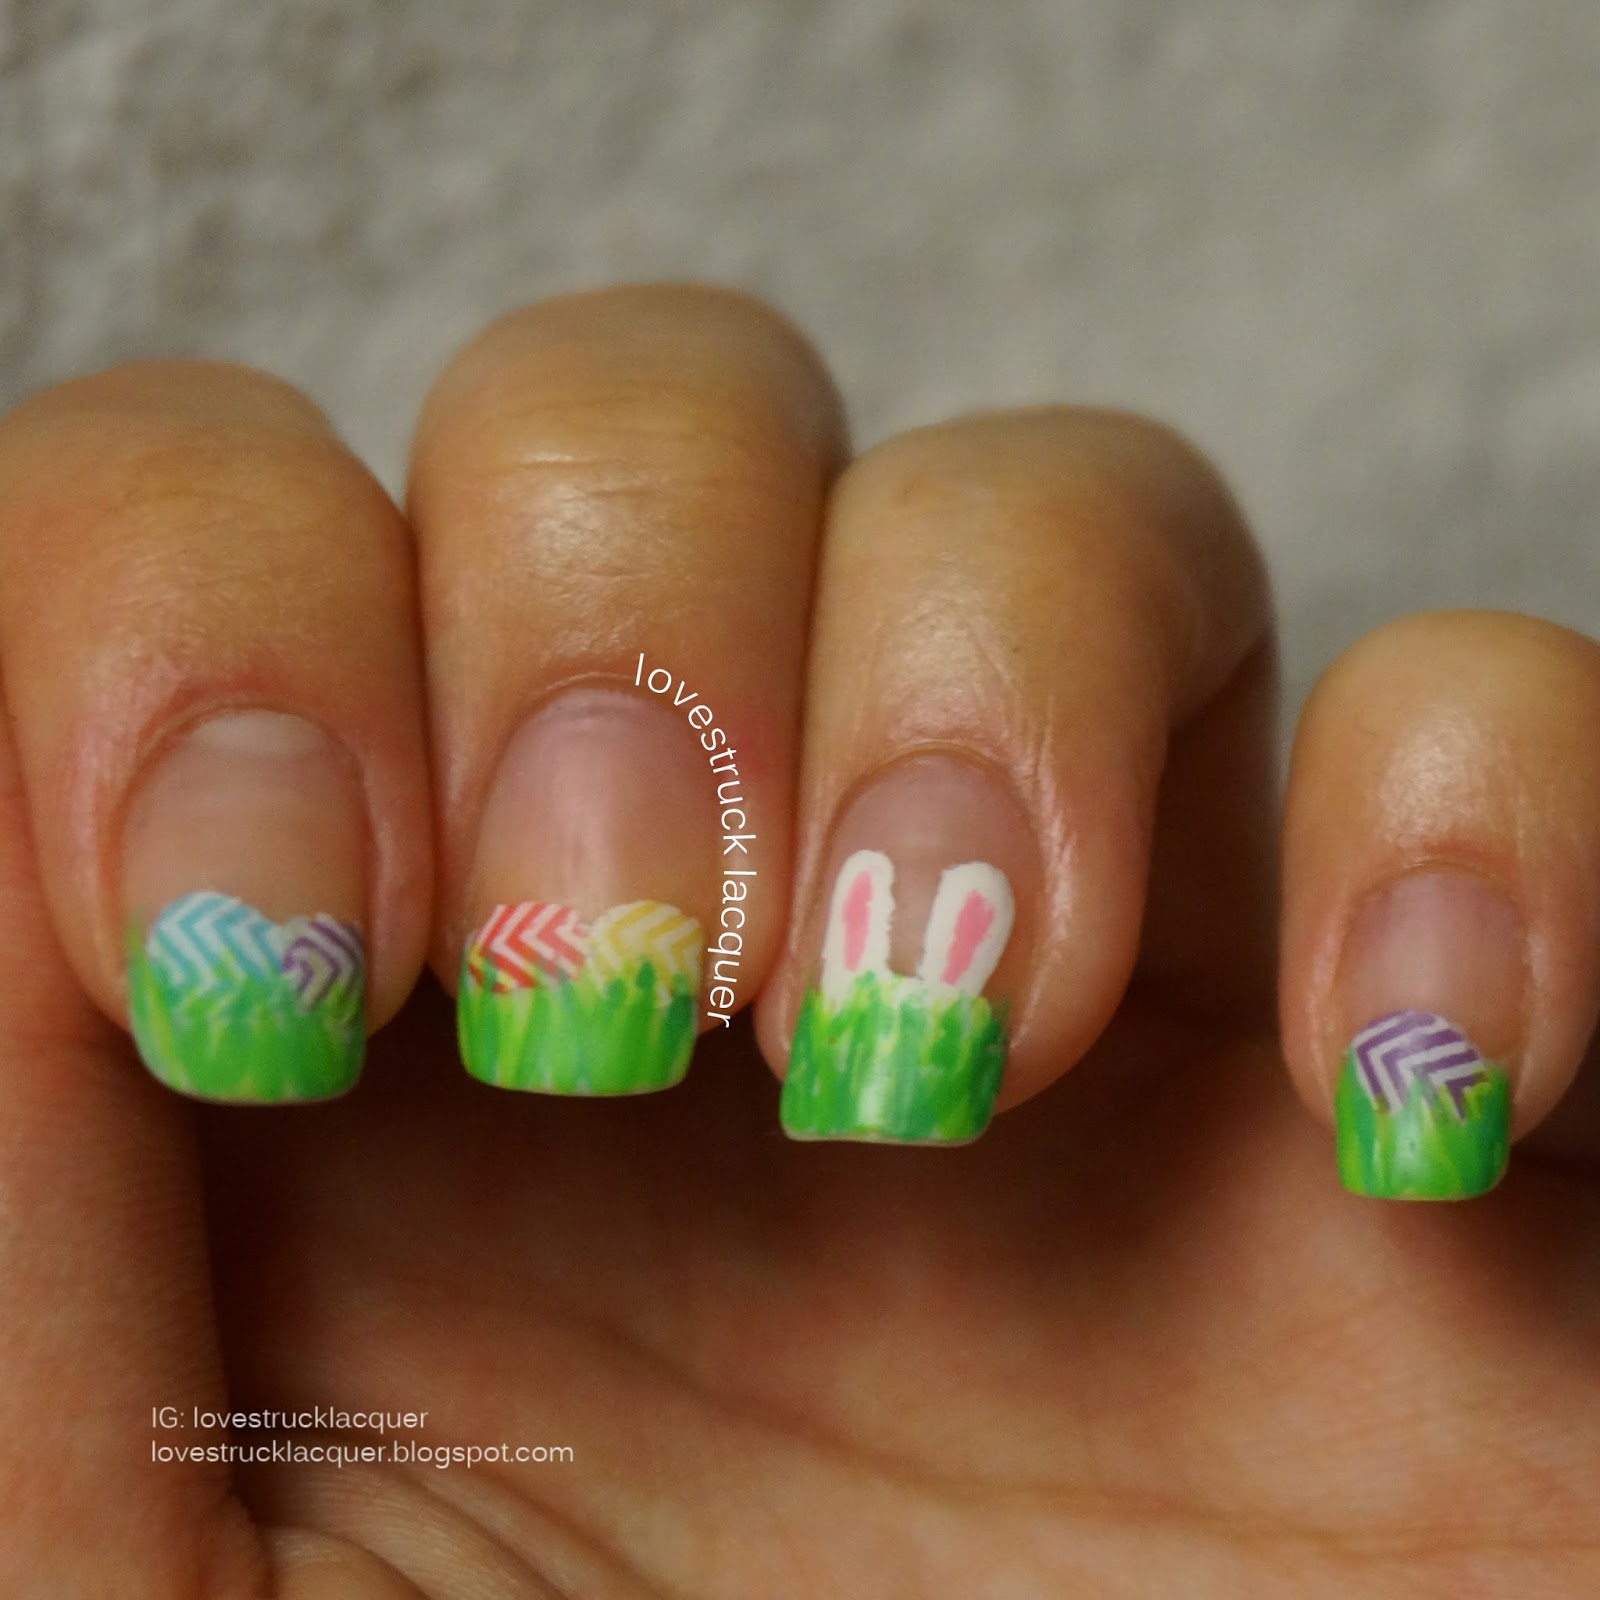 Lovestruck Lacquer: Easter Egg Hunt - Tip Nail Art